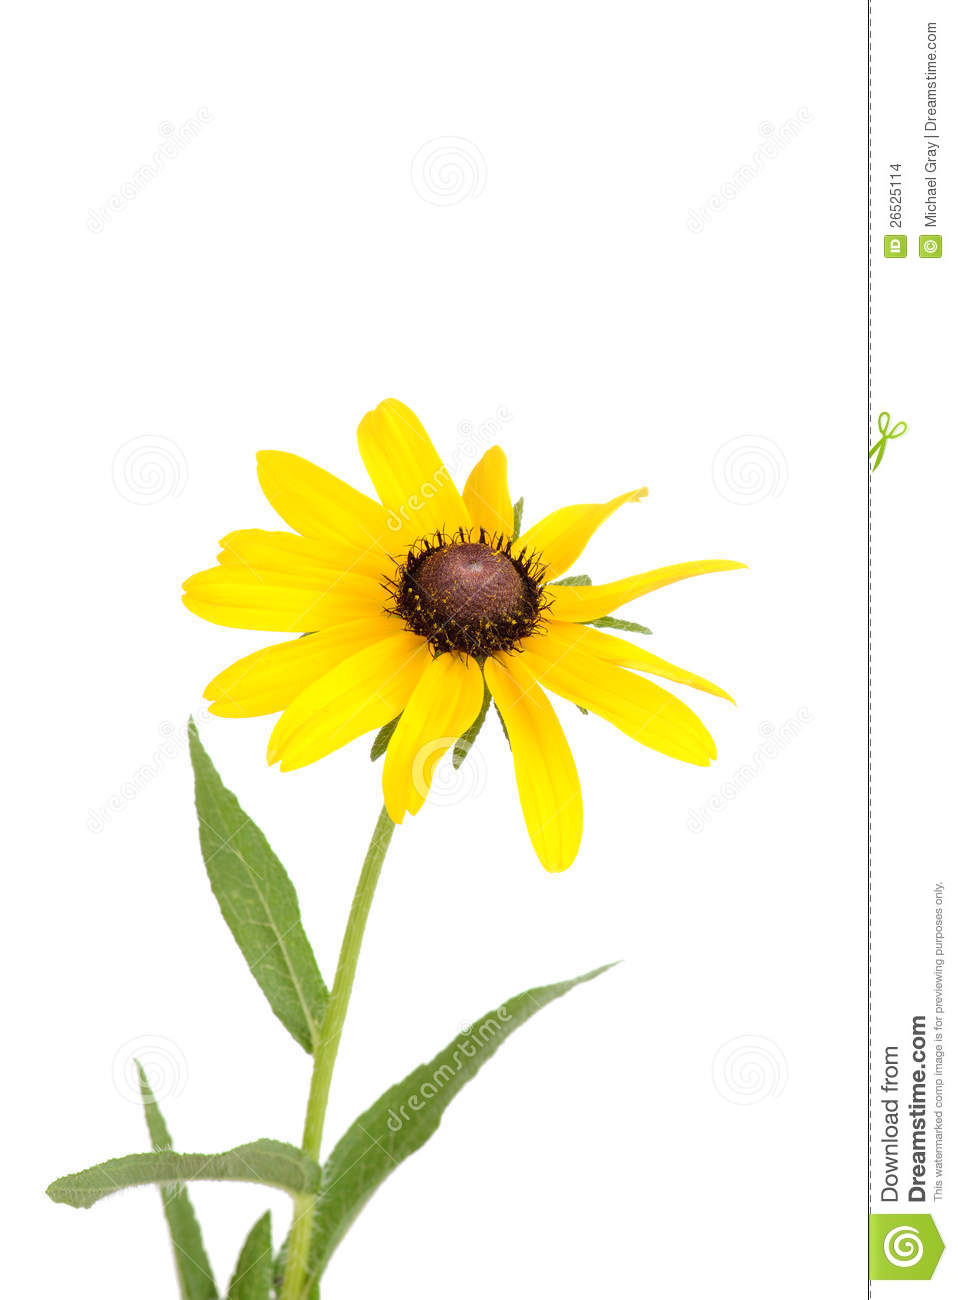 Black-eyed Susan clipart #4, Download drawings